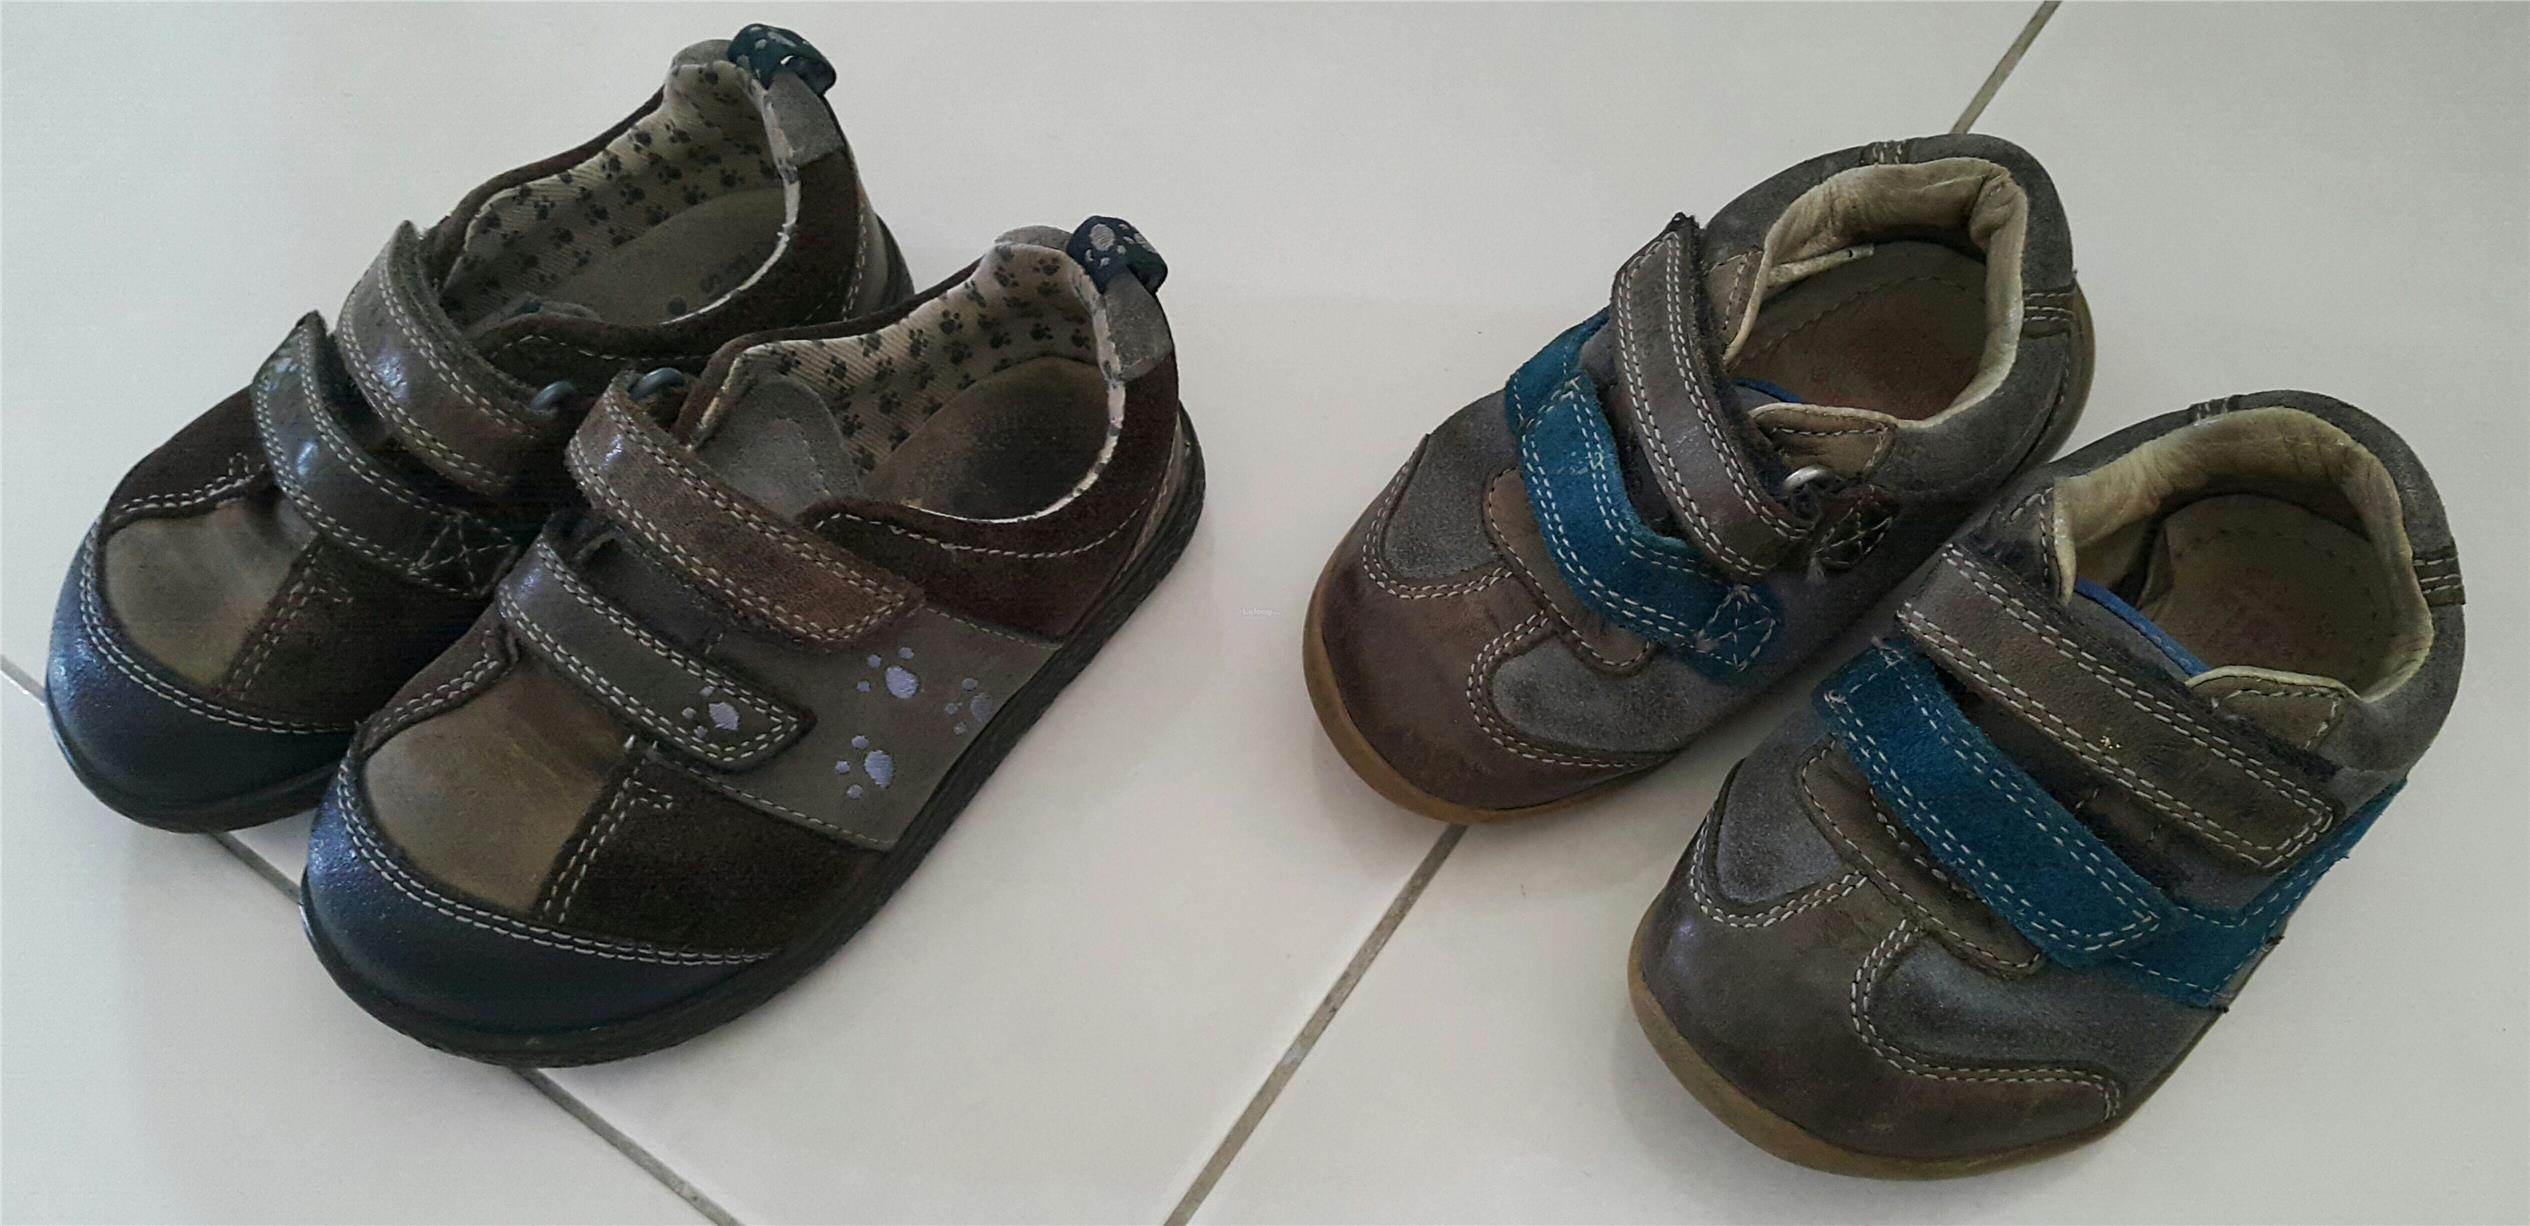 Clark baby boy shoes end 5 6 2018 6 15 PM